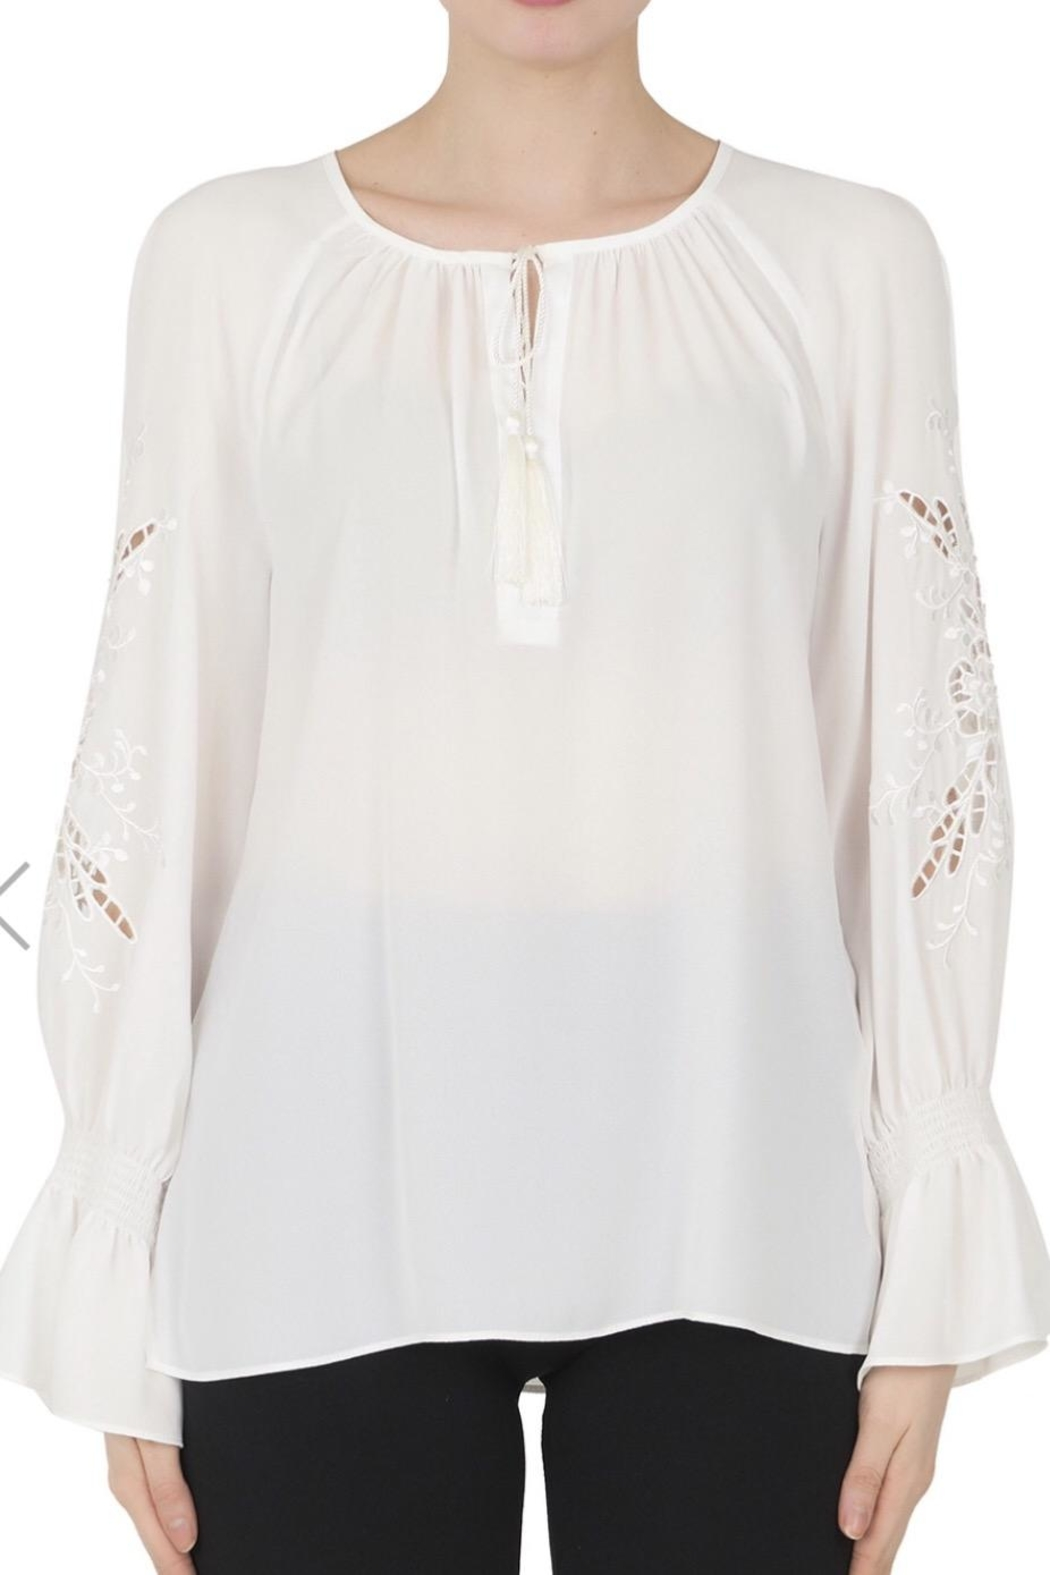 Joseph Ribkoff White Peasant Blouse - Front Cropped Image